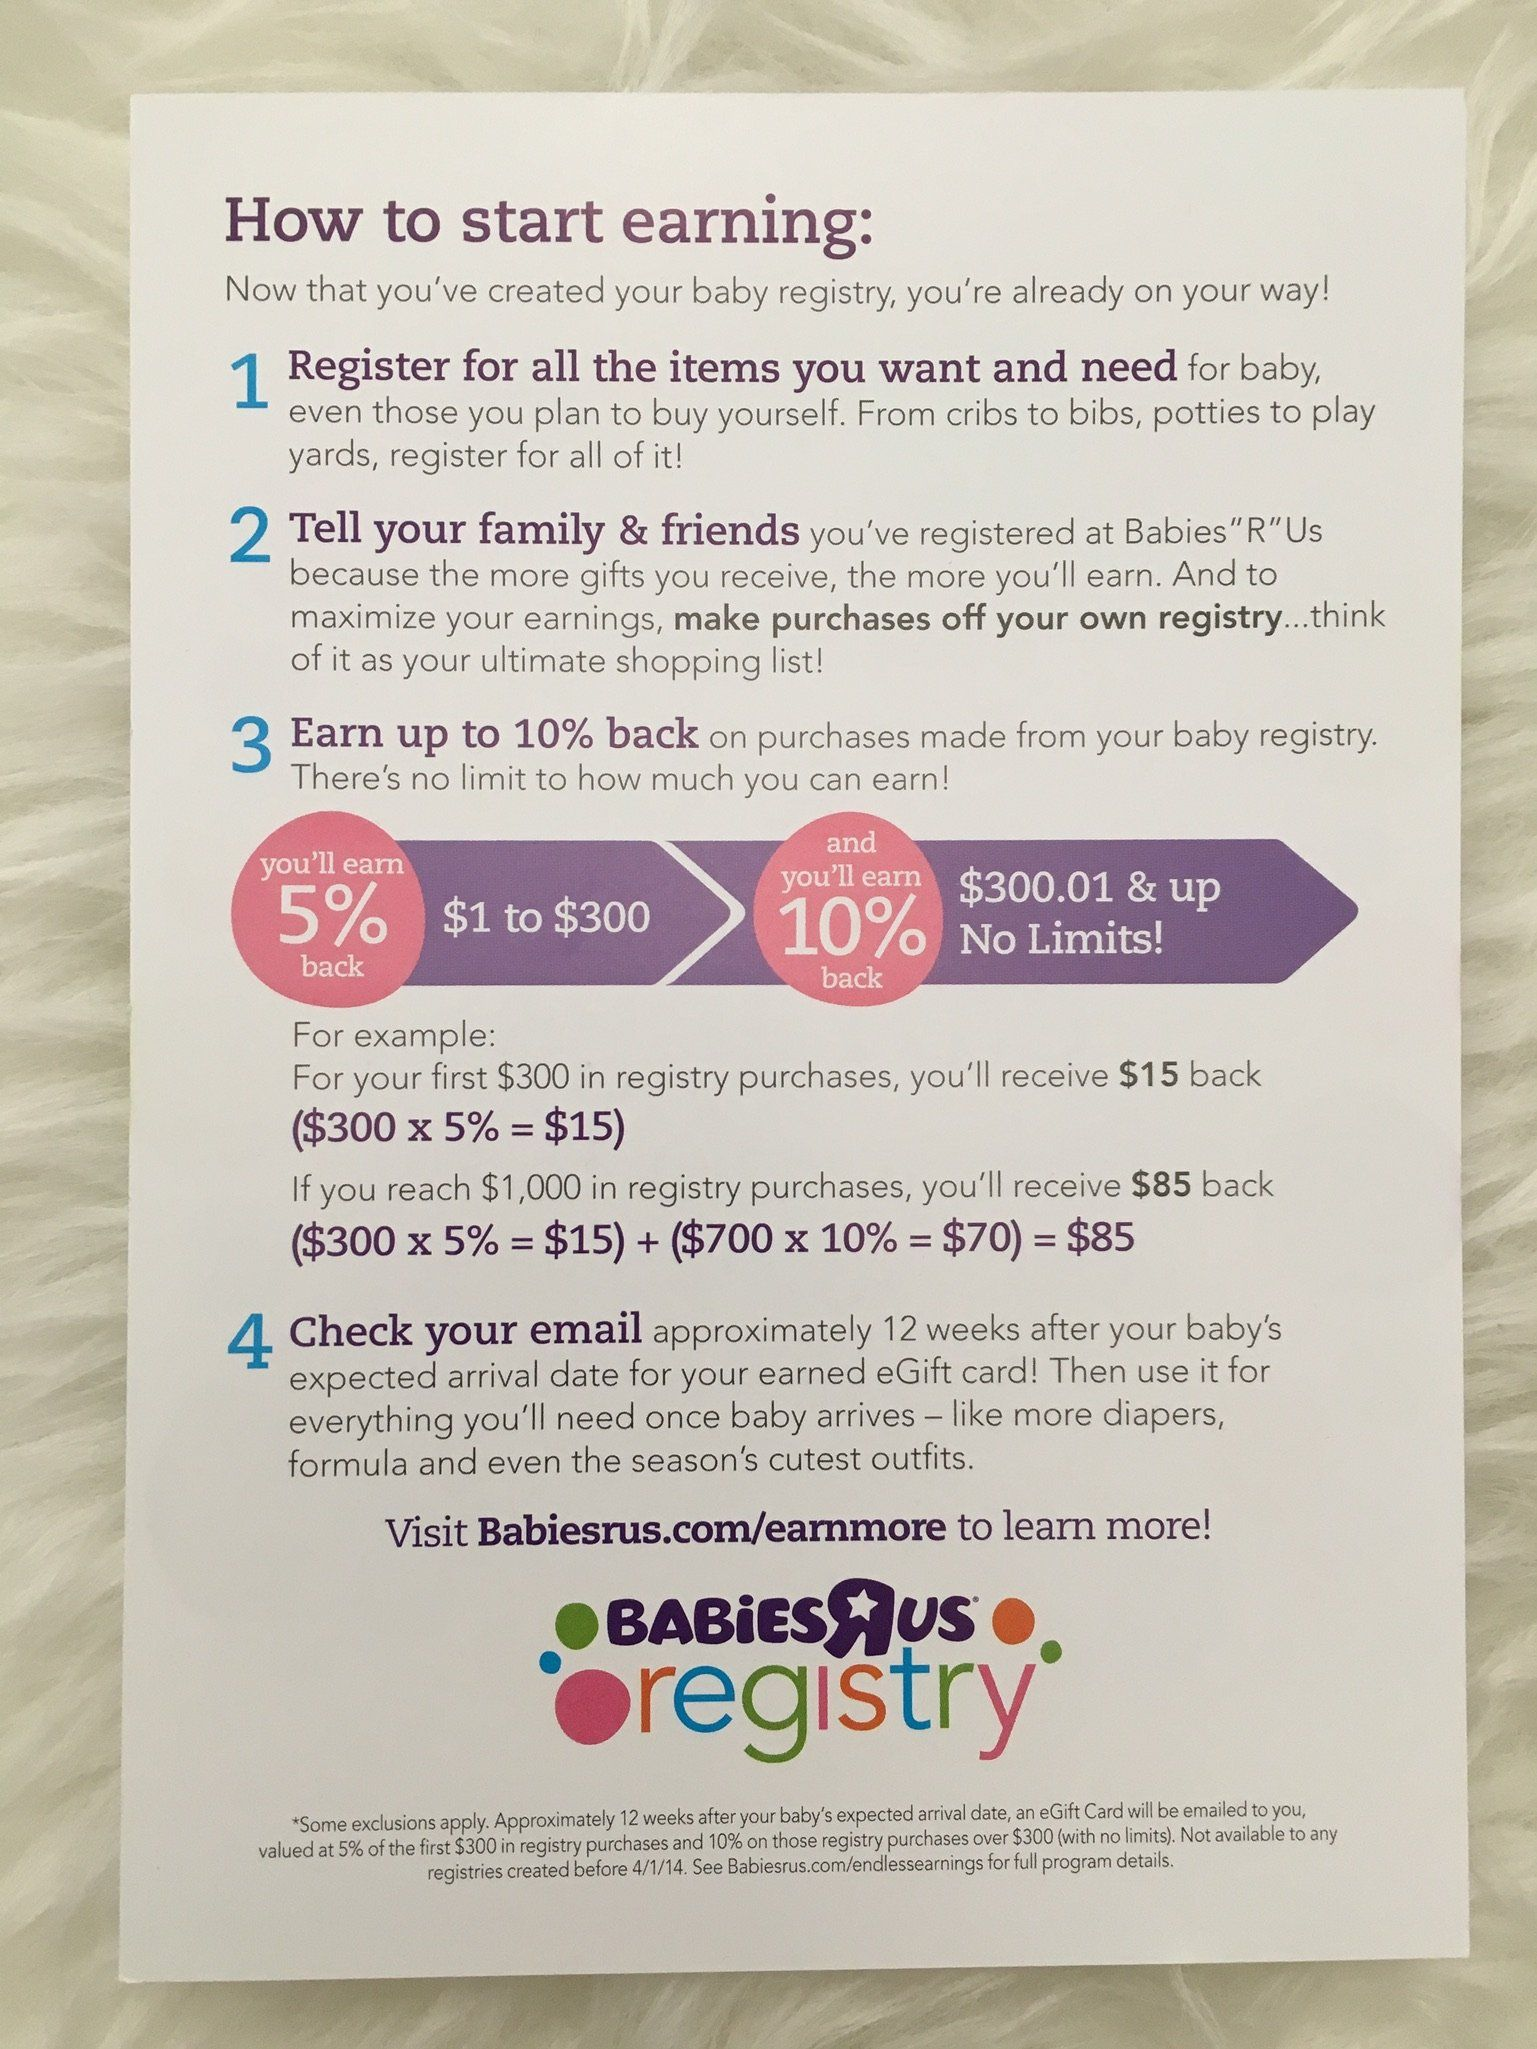 How To Get The Most From Your Babies R Us Registry Save Up To 25 Top Baby Spot Baby Shower Registry Babies R Us Registry